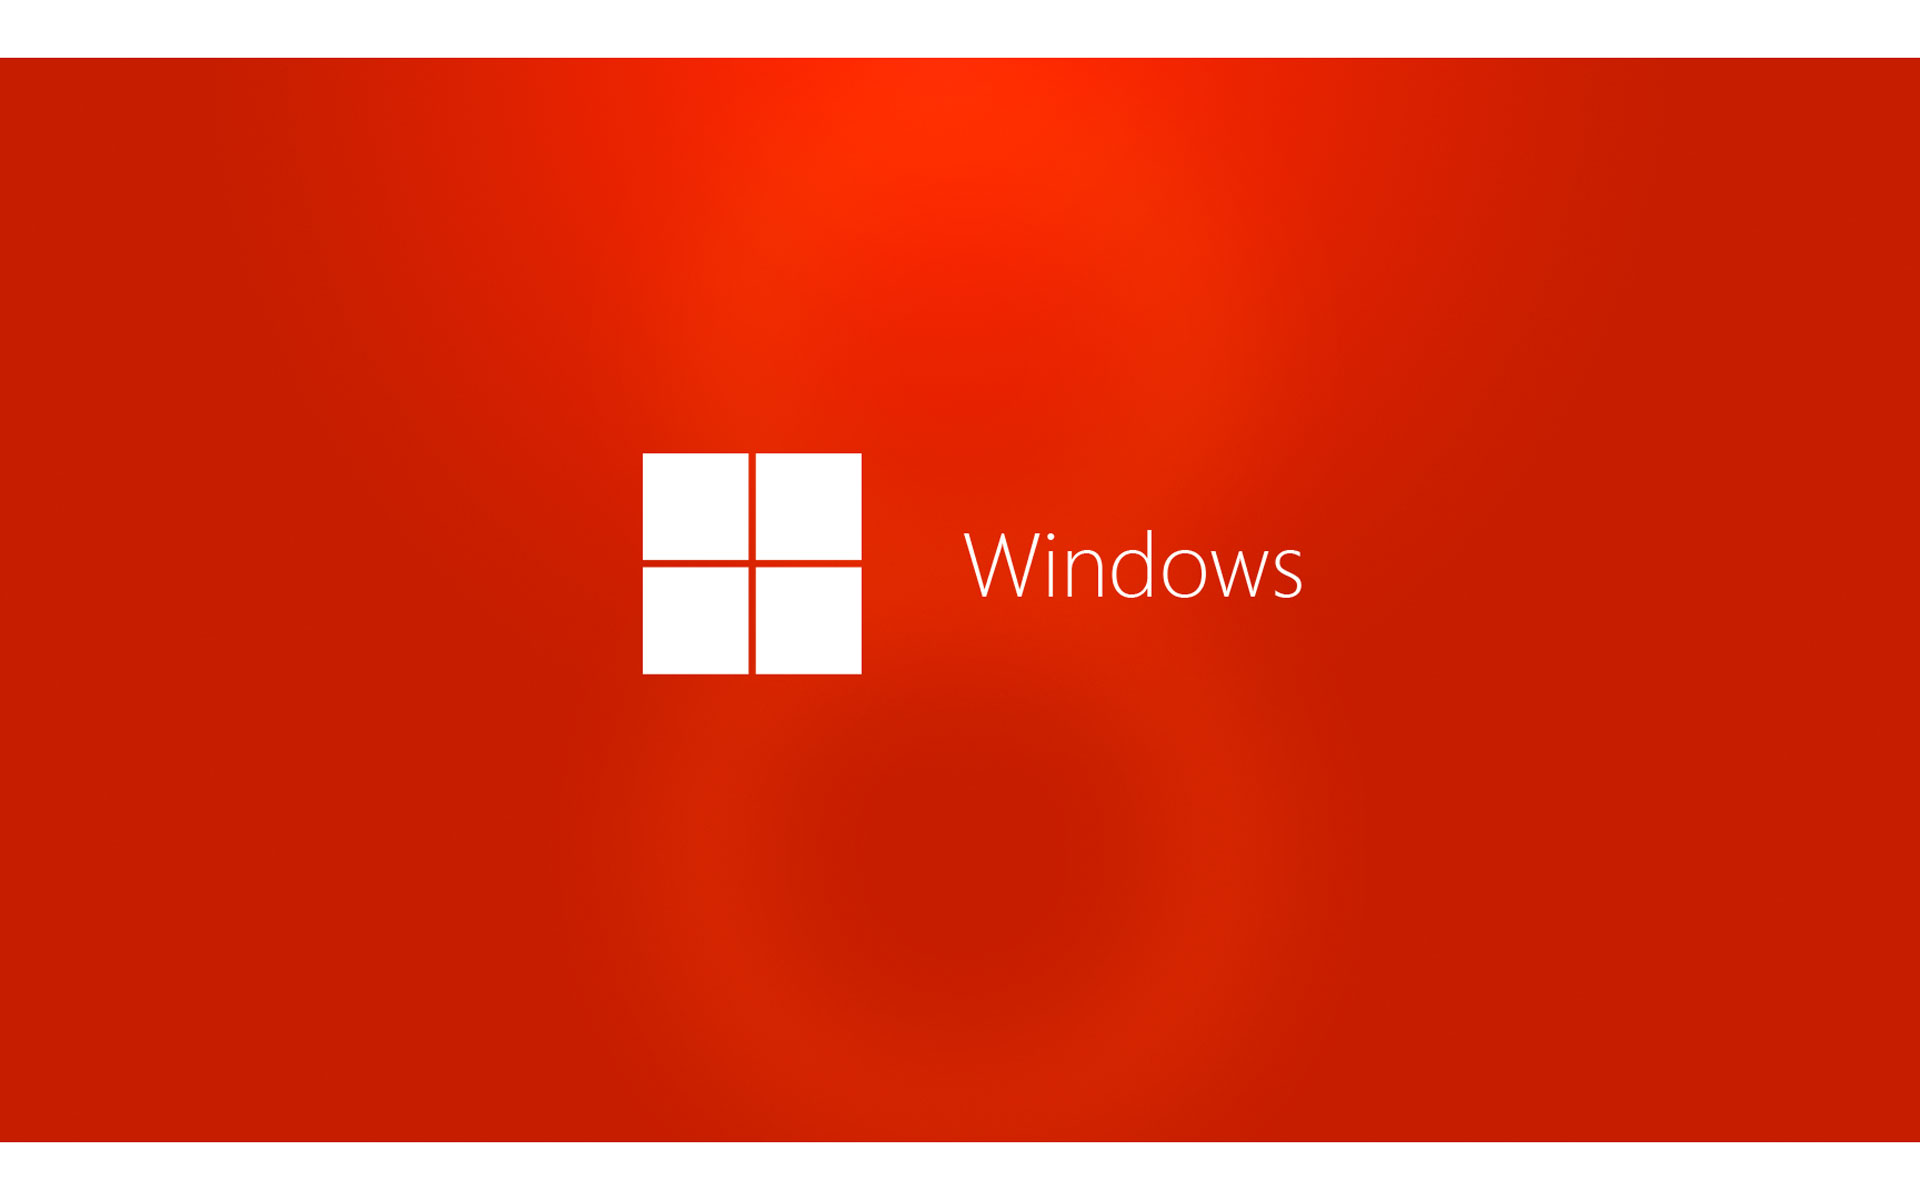 Free Download Wallpapers Windows Simple Red Wallpaper